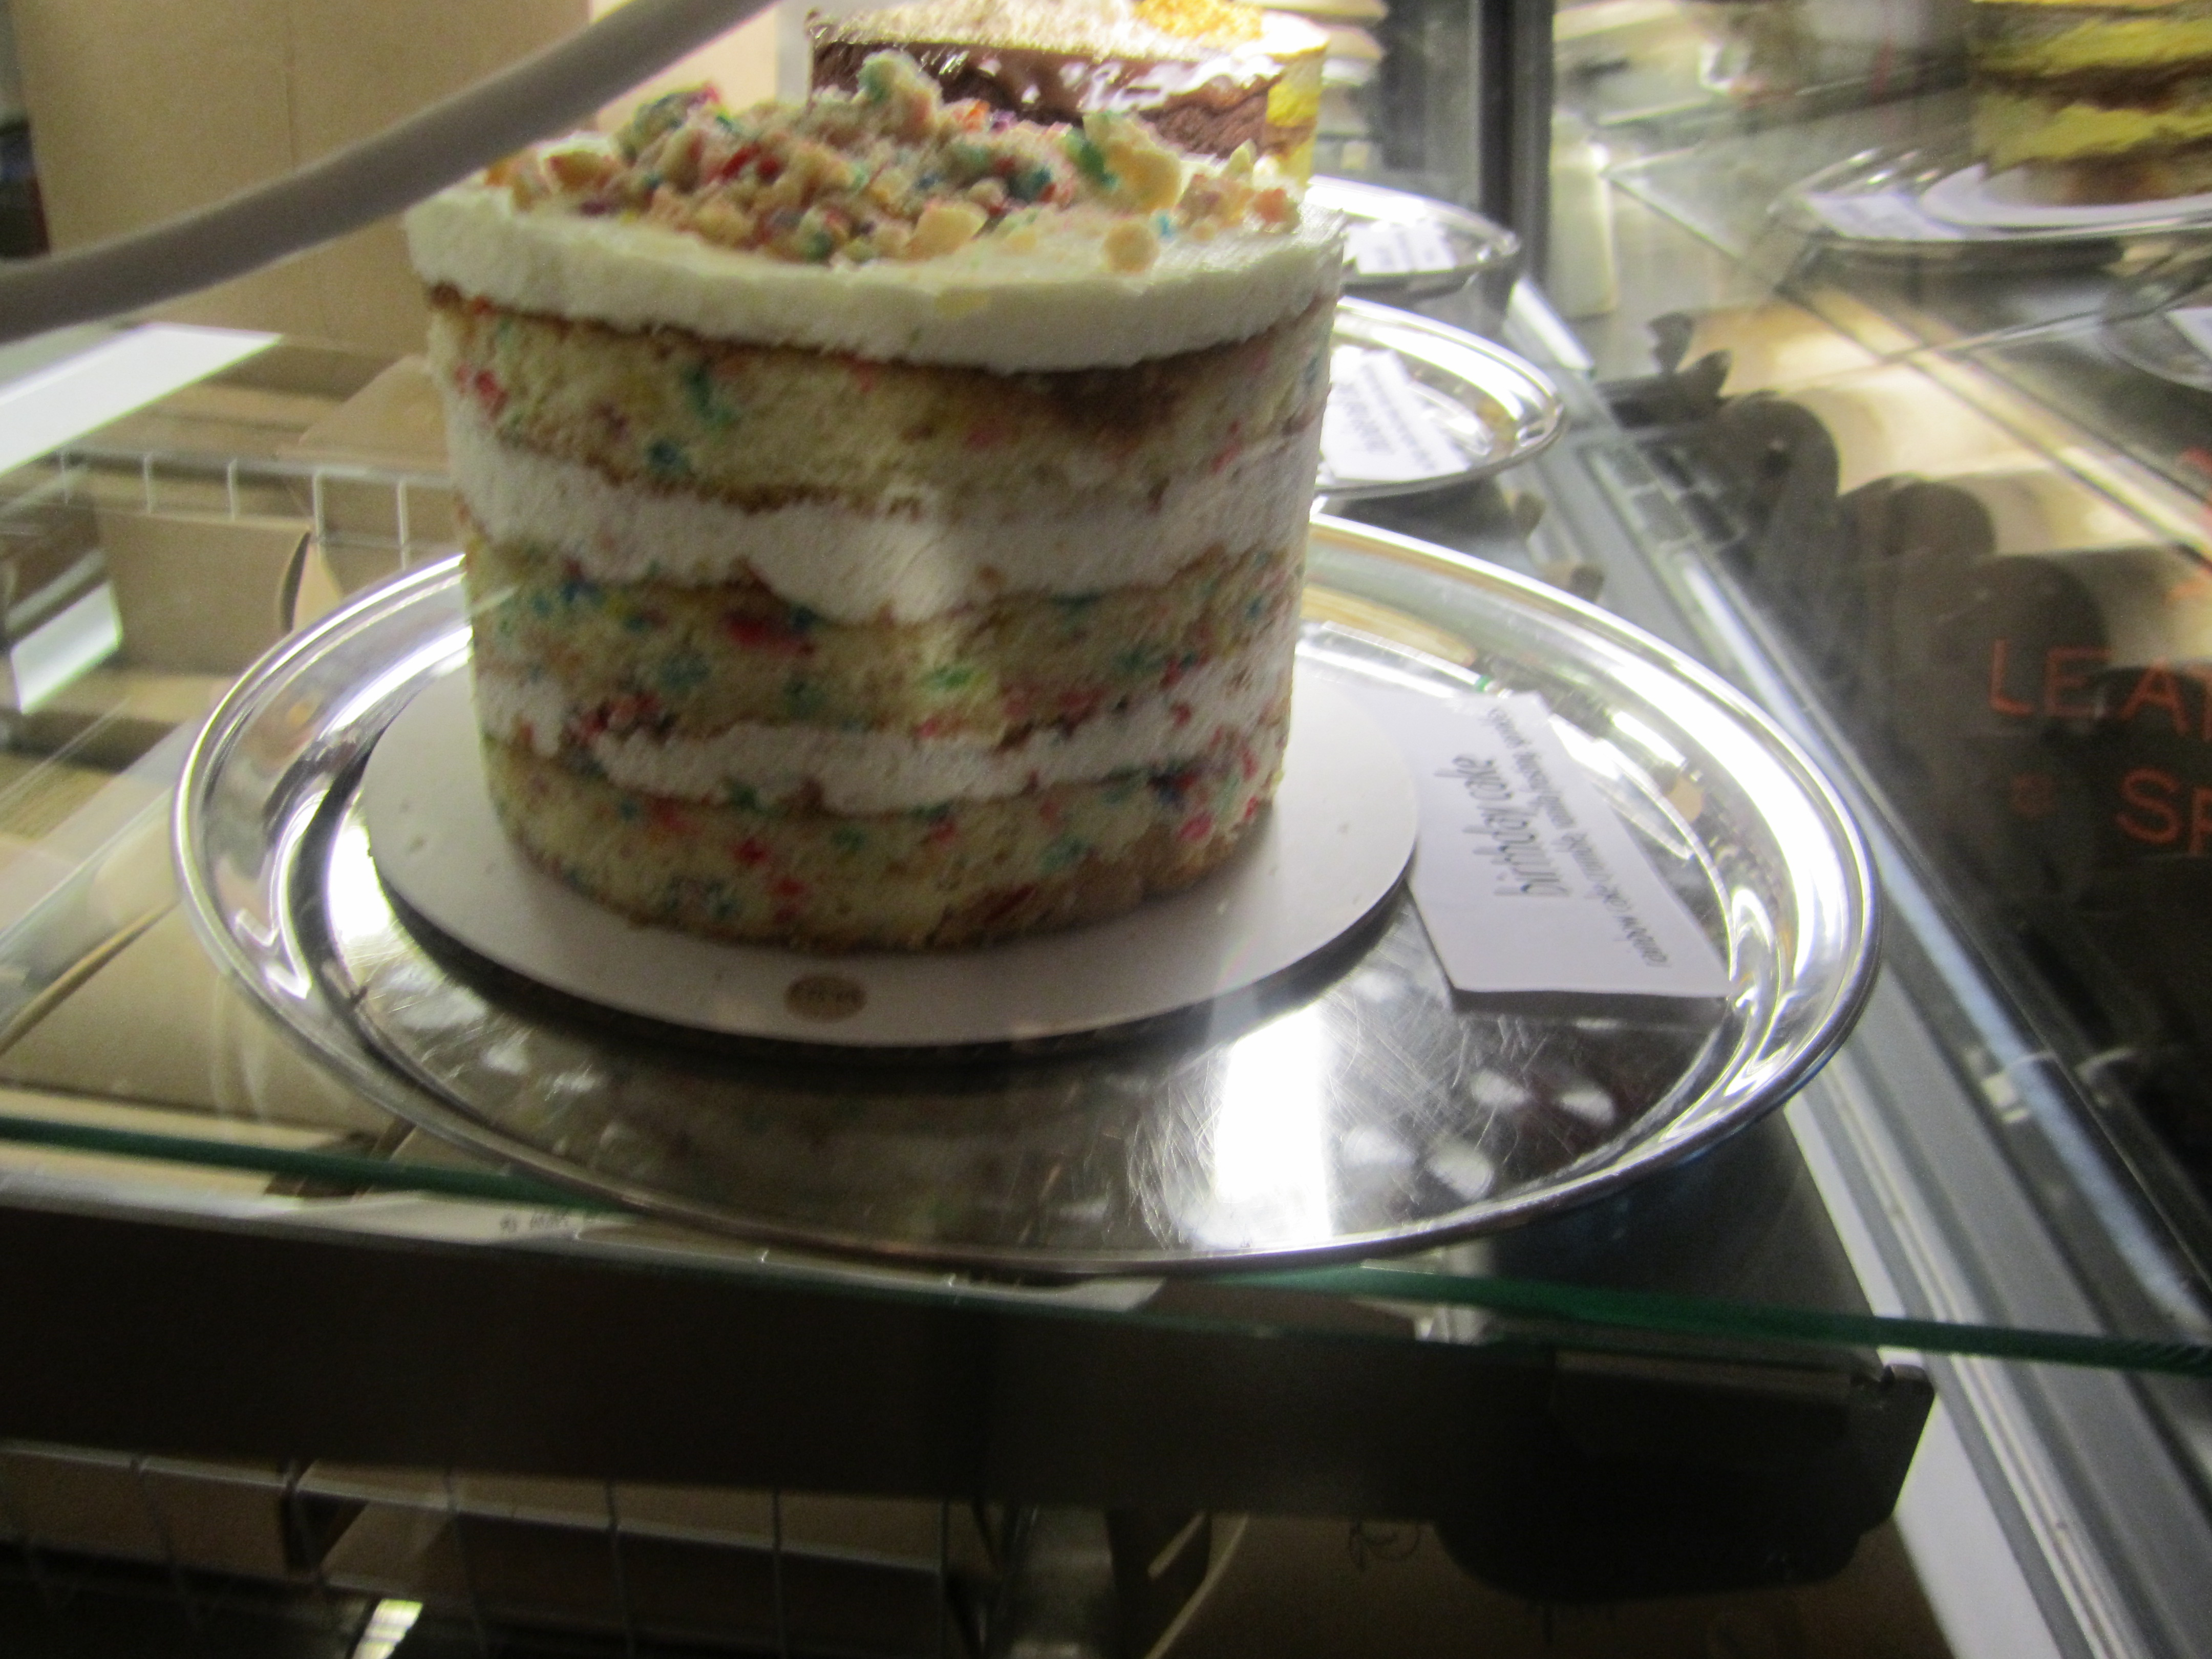 Birthday Cake An Upscale Version Of The Boxed Funfetti Or Rainbow Chip With Crumble Sprinkles And Vanilla Frosting